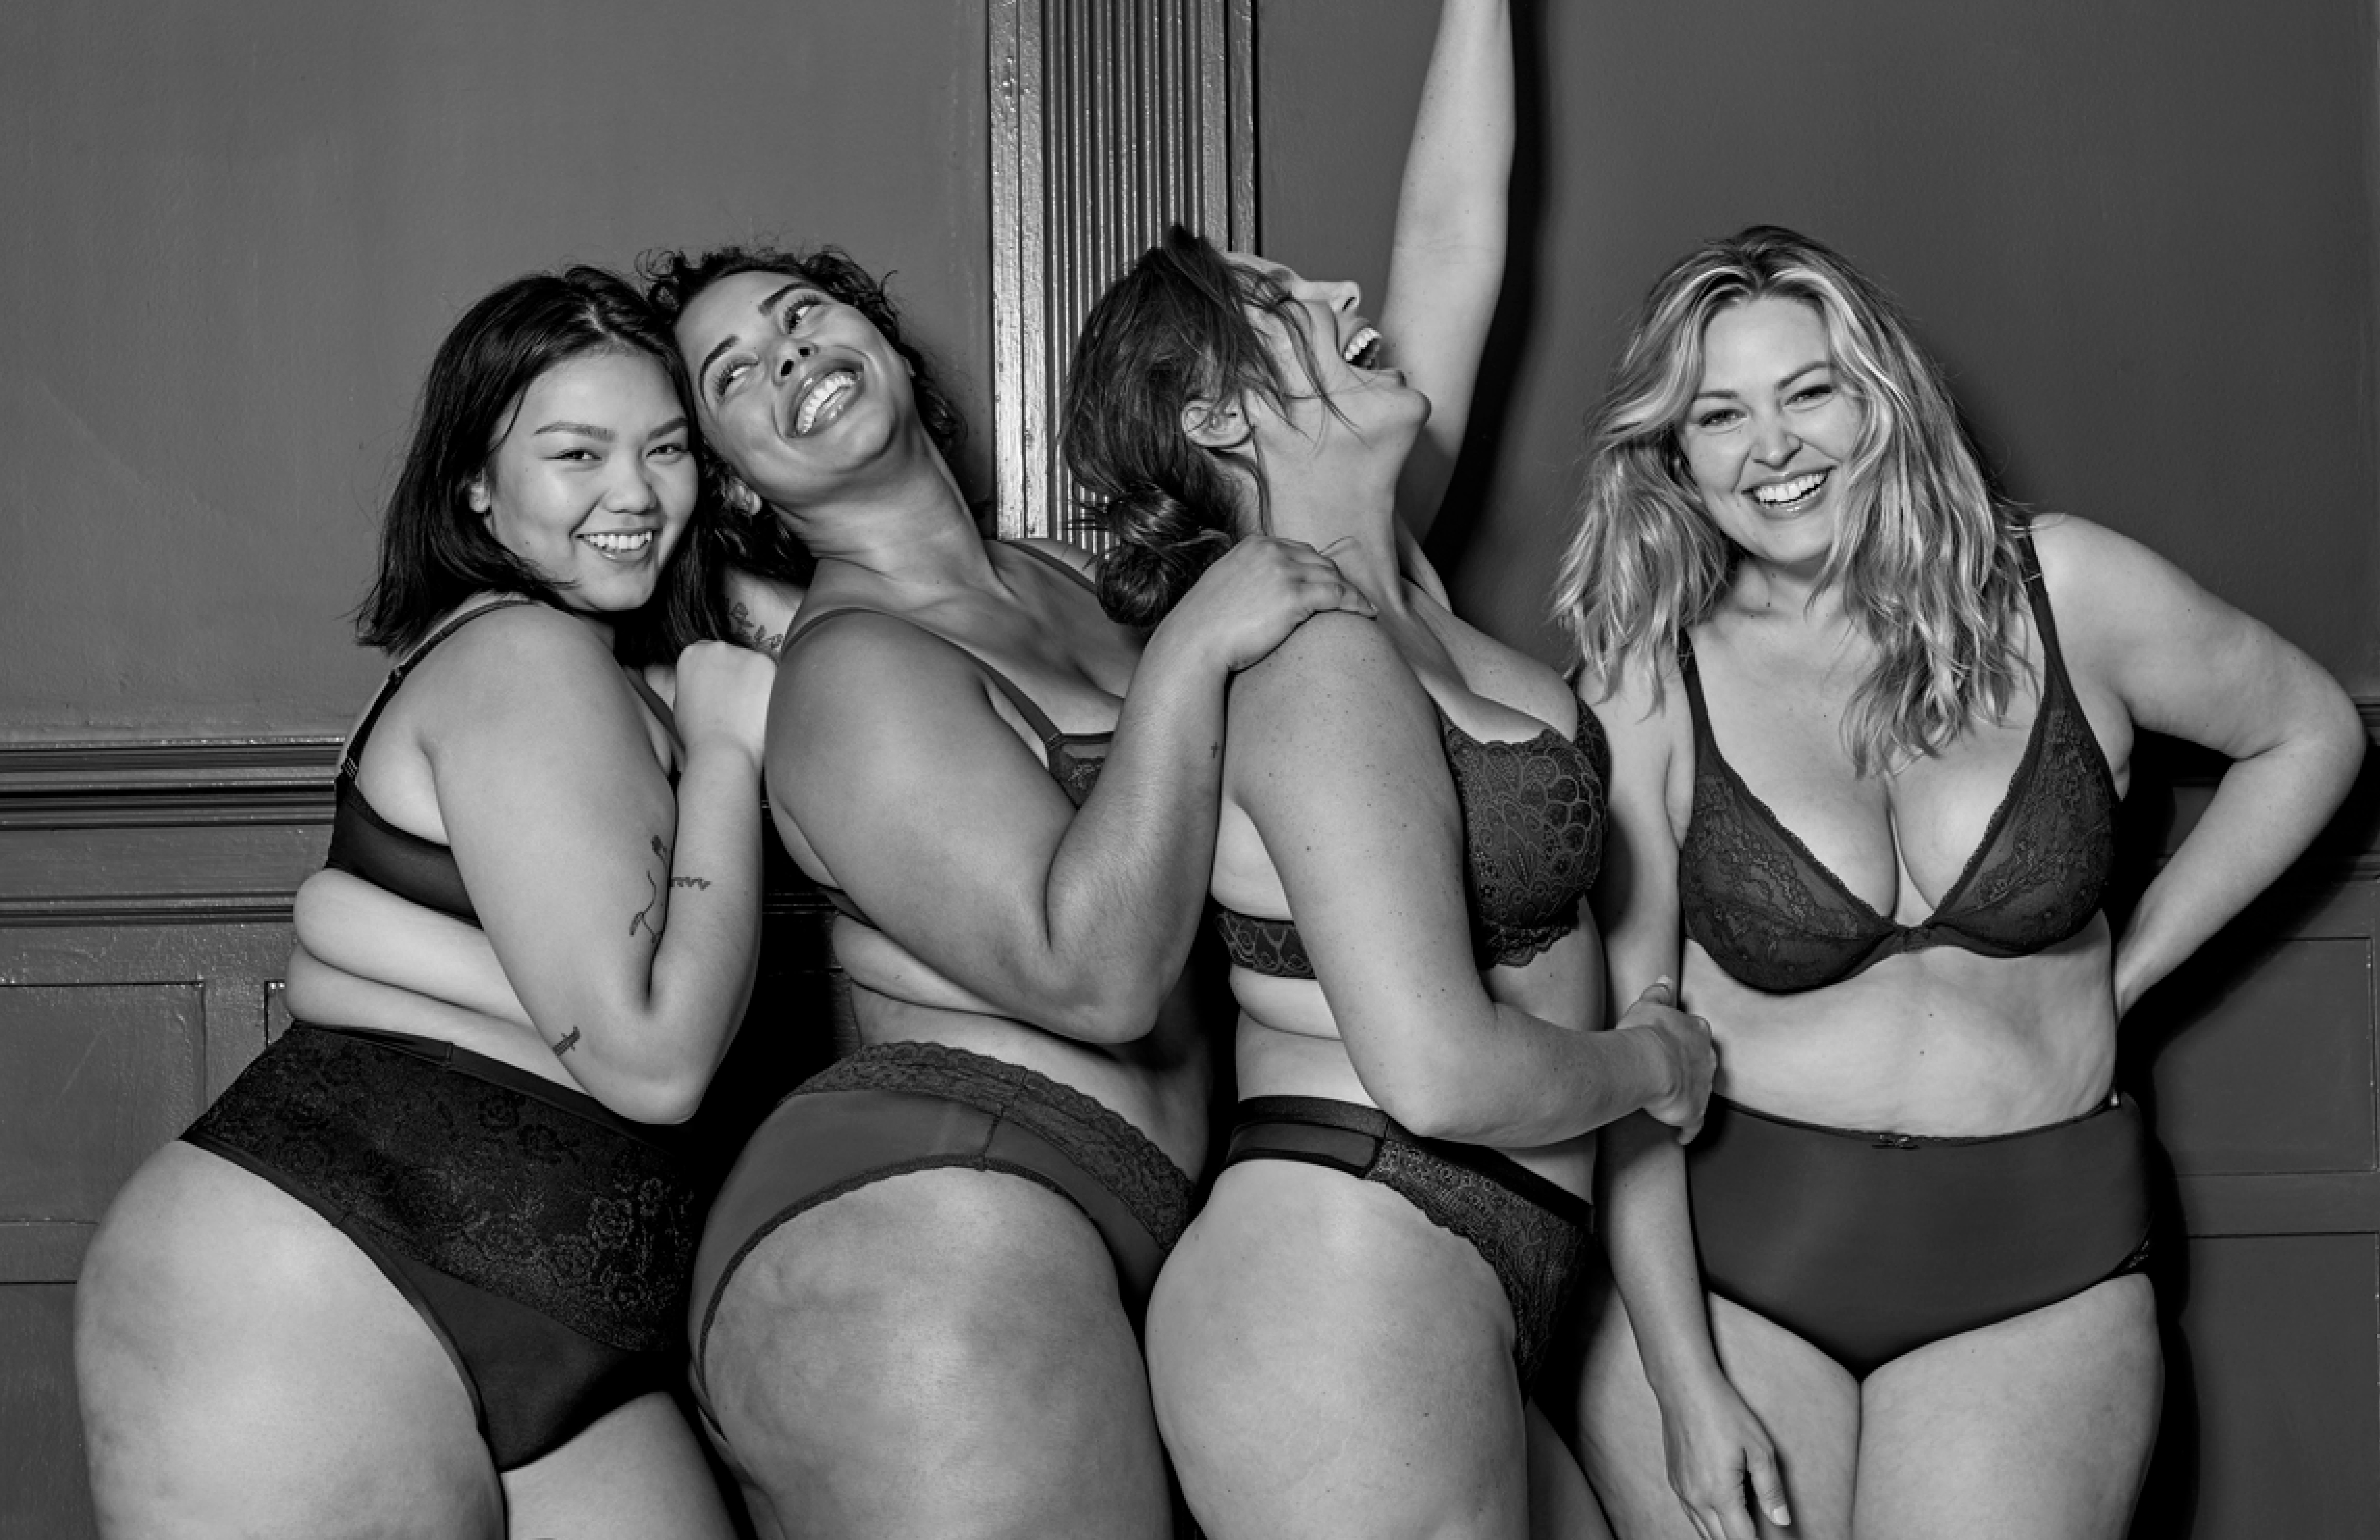 Torrid, now a public company, sees intimates as a growth opportunity.